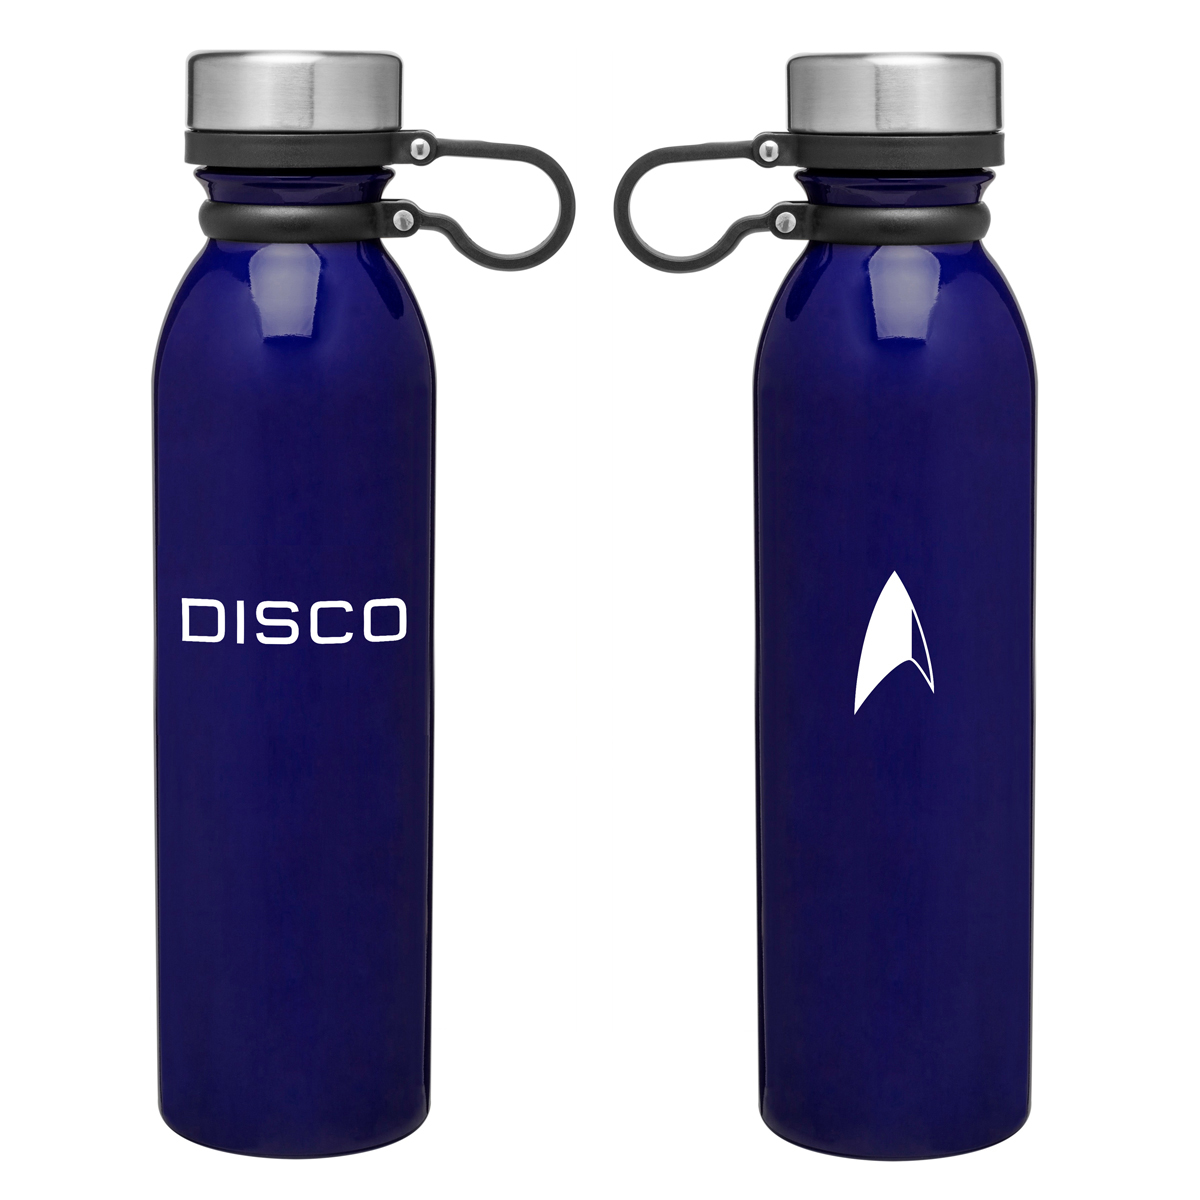 Star Trek Discovery Disco Glossy Thermal Bottle